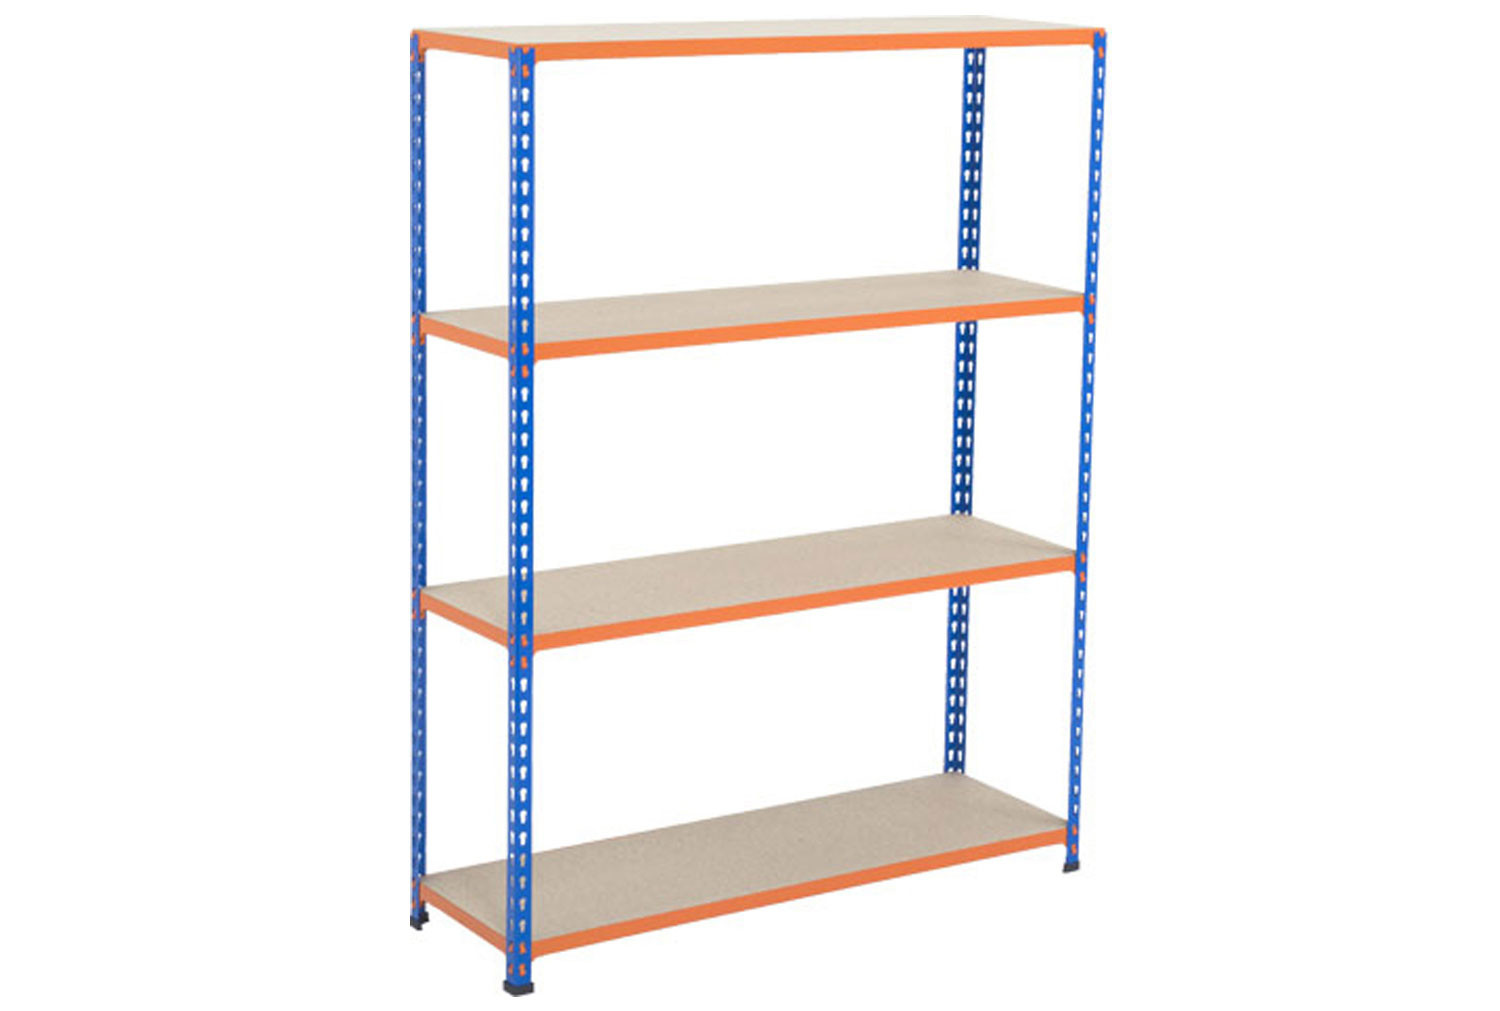 Rapid 2 Shelving With 4 Chipboard Shelves 1525wx1980h (Blue/Orange)